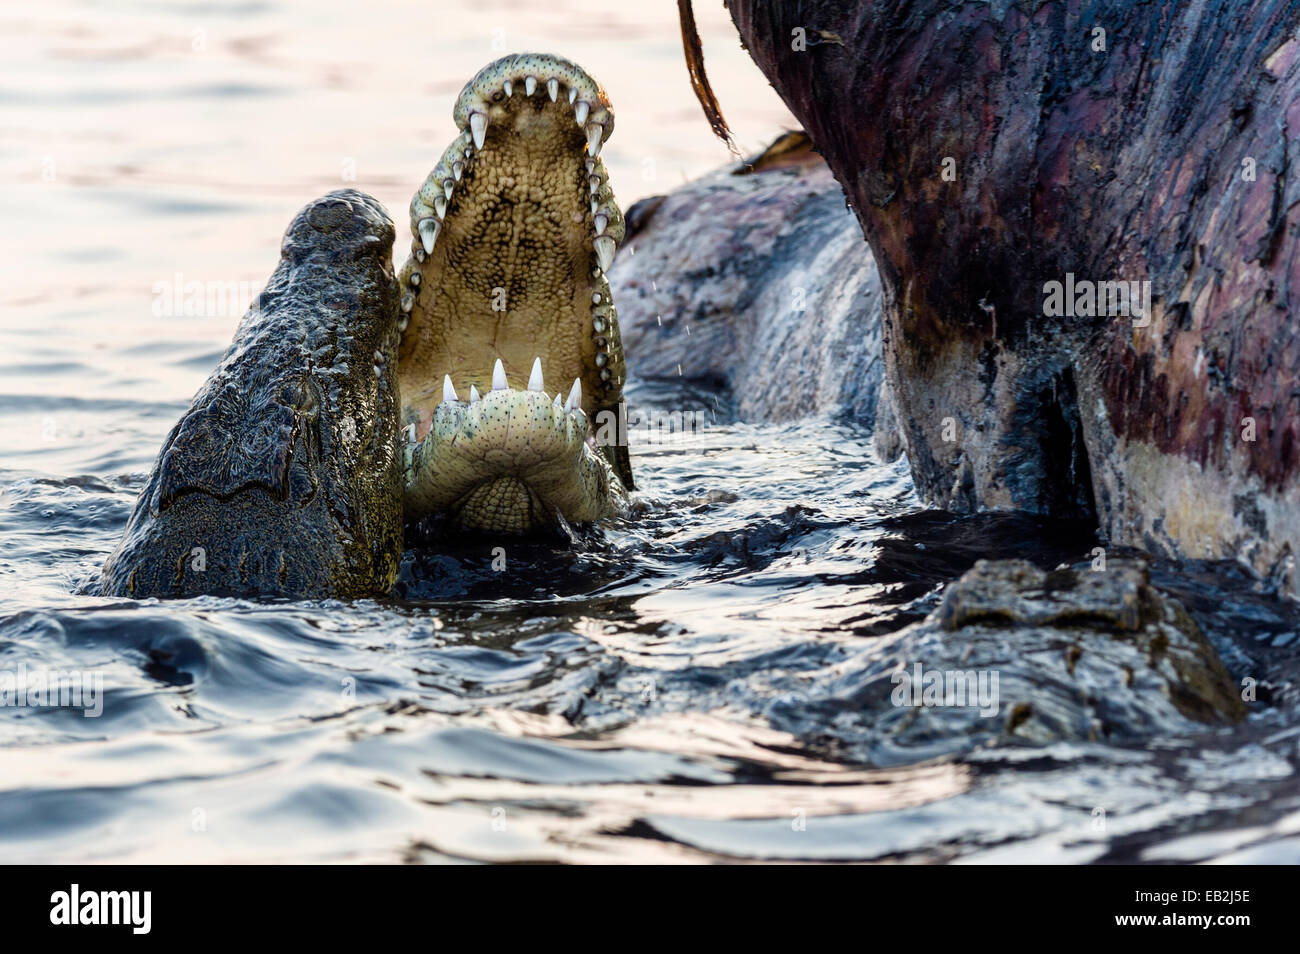 Nile Crocodiles in a feeding frenzy clash jaws during fights over a Nile Hippo carcass. - Stock Image